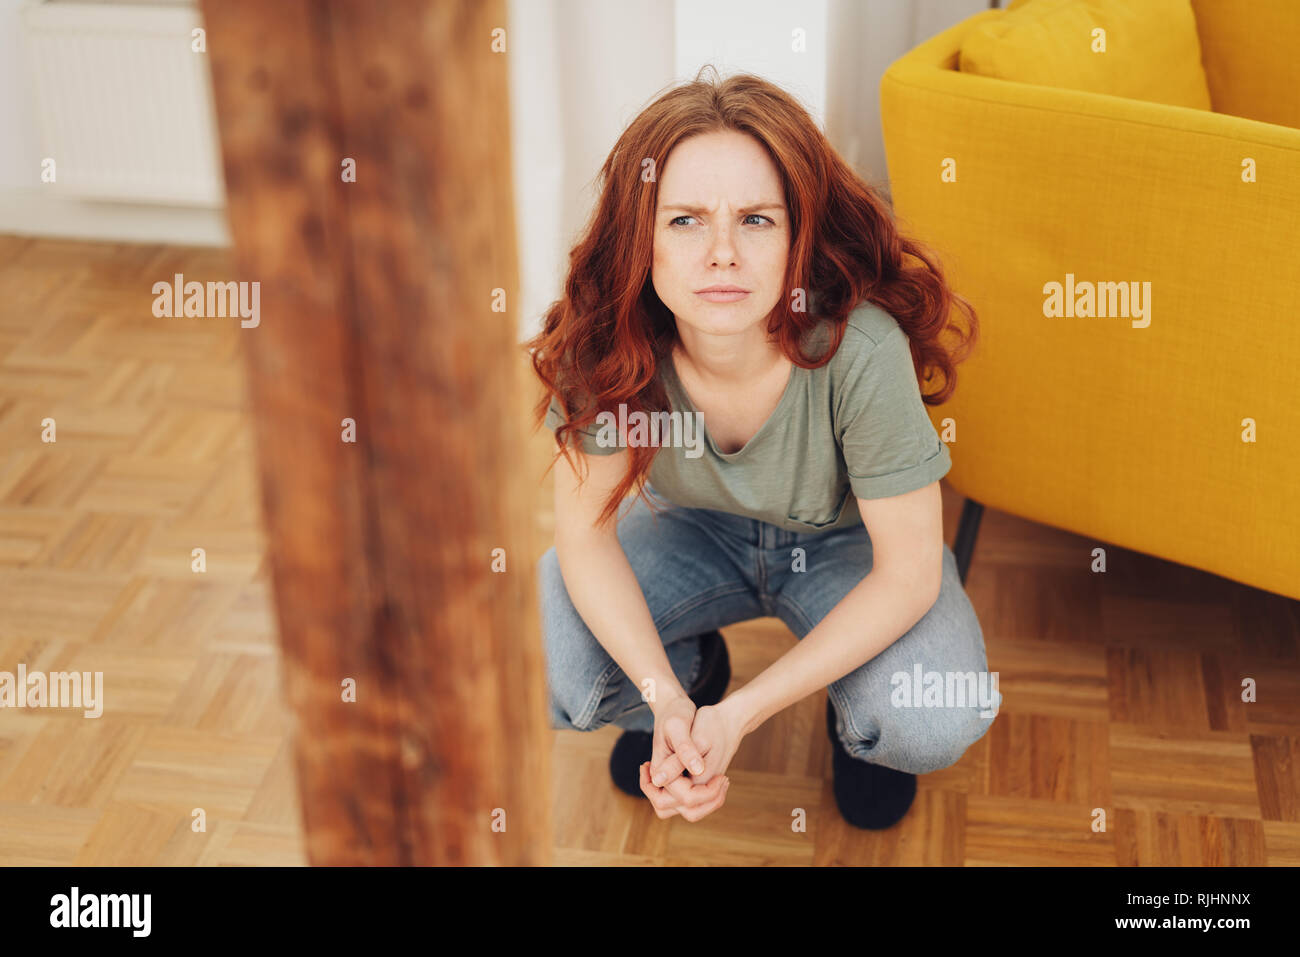 Puzzled young woman crouching down thinking with a serious expression and frown indoors on a parquet floor in her living room - Stock Image